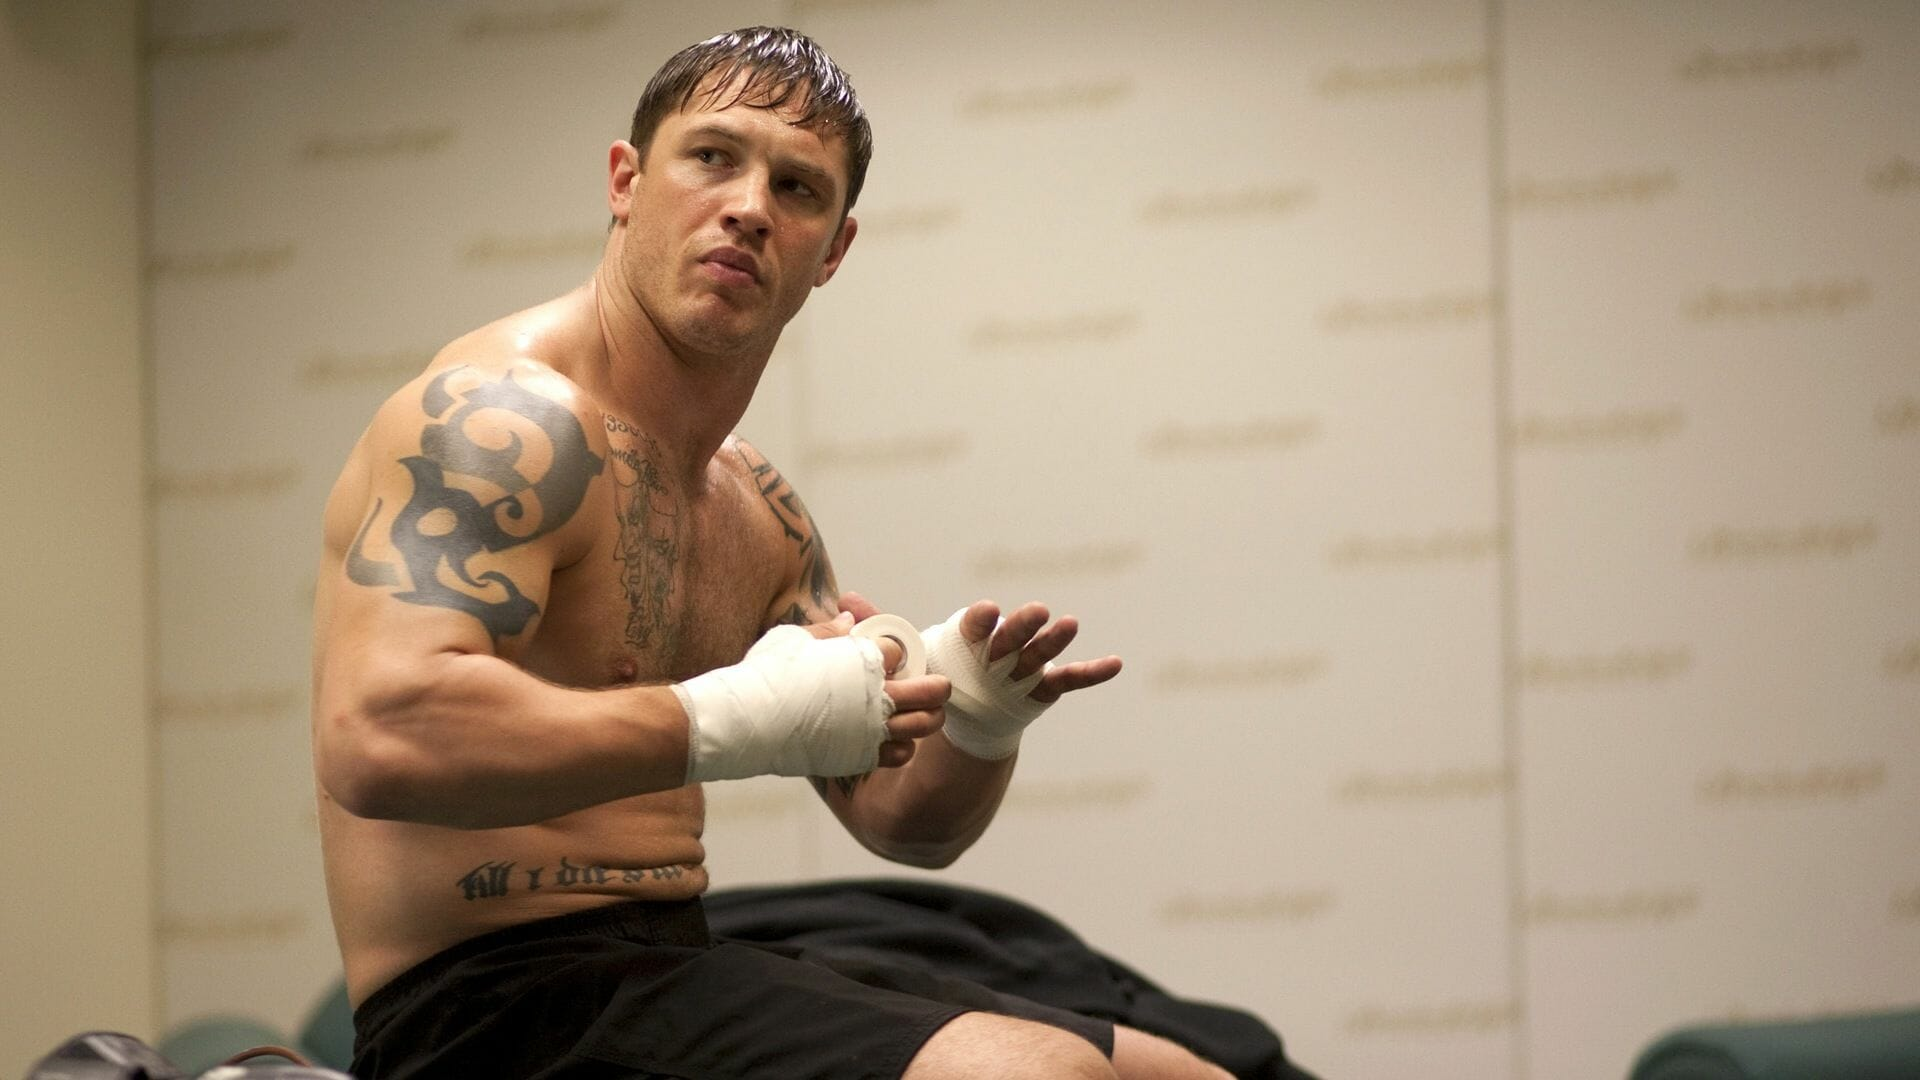 Tom Hardy Is Seriously Bulking Up For His New Venom Movie Role